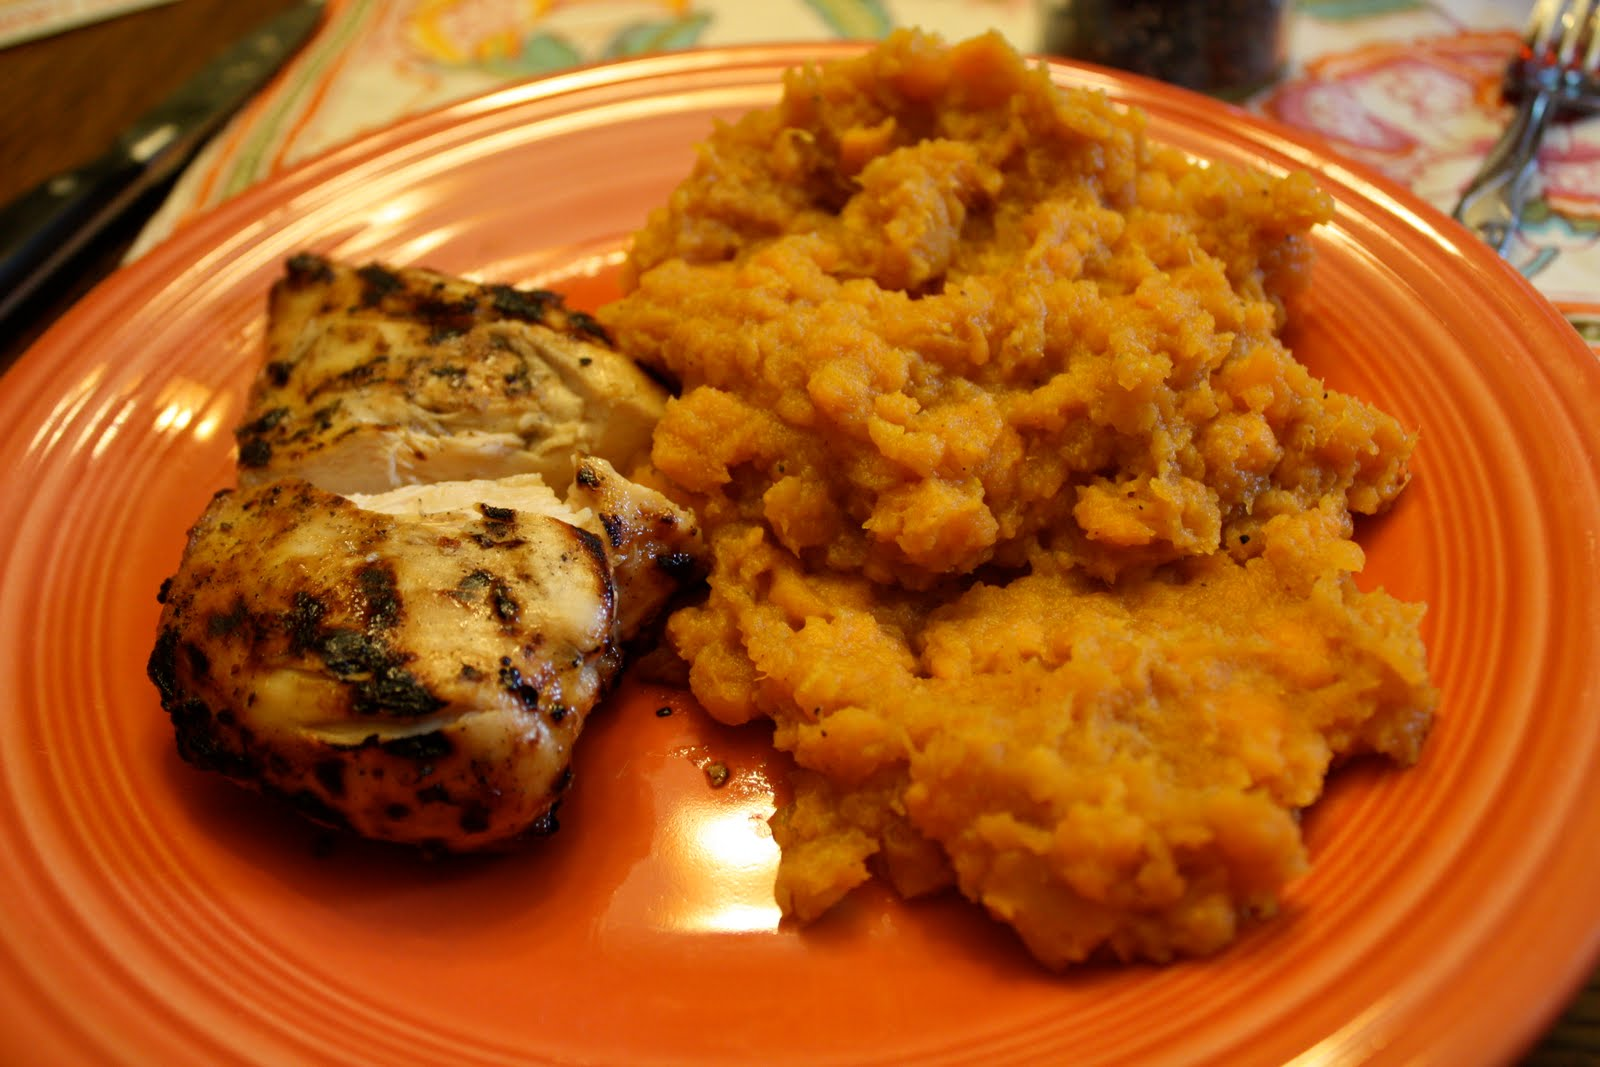 Grilled Chicken And Mashed Sweet Potatoes Hankbob Bbq